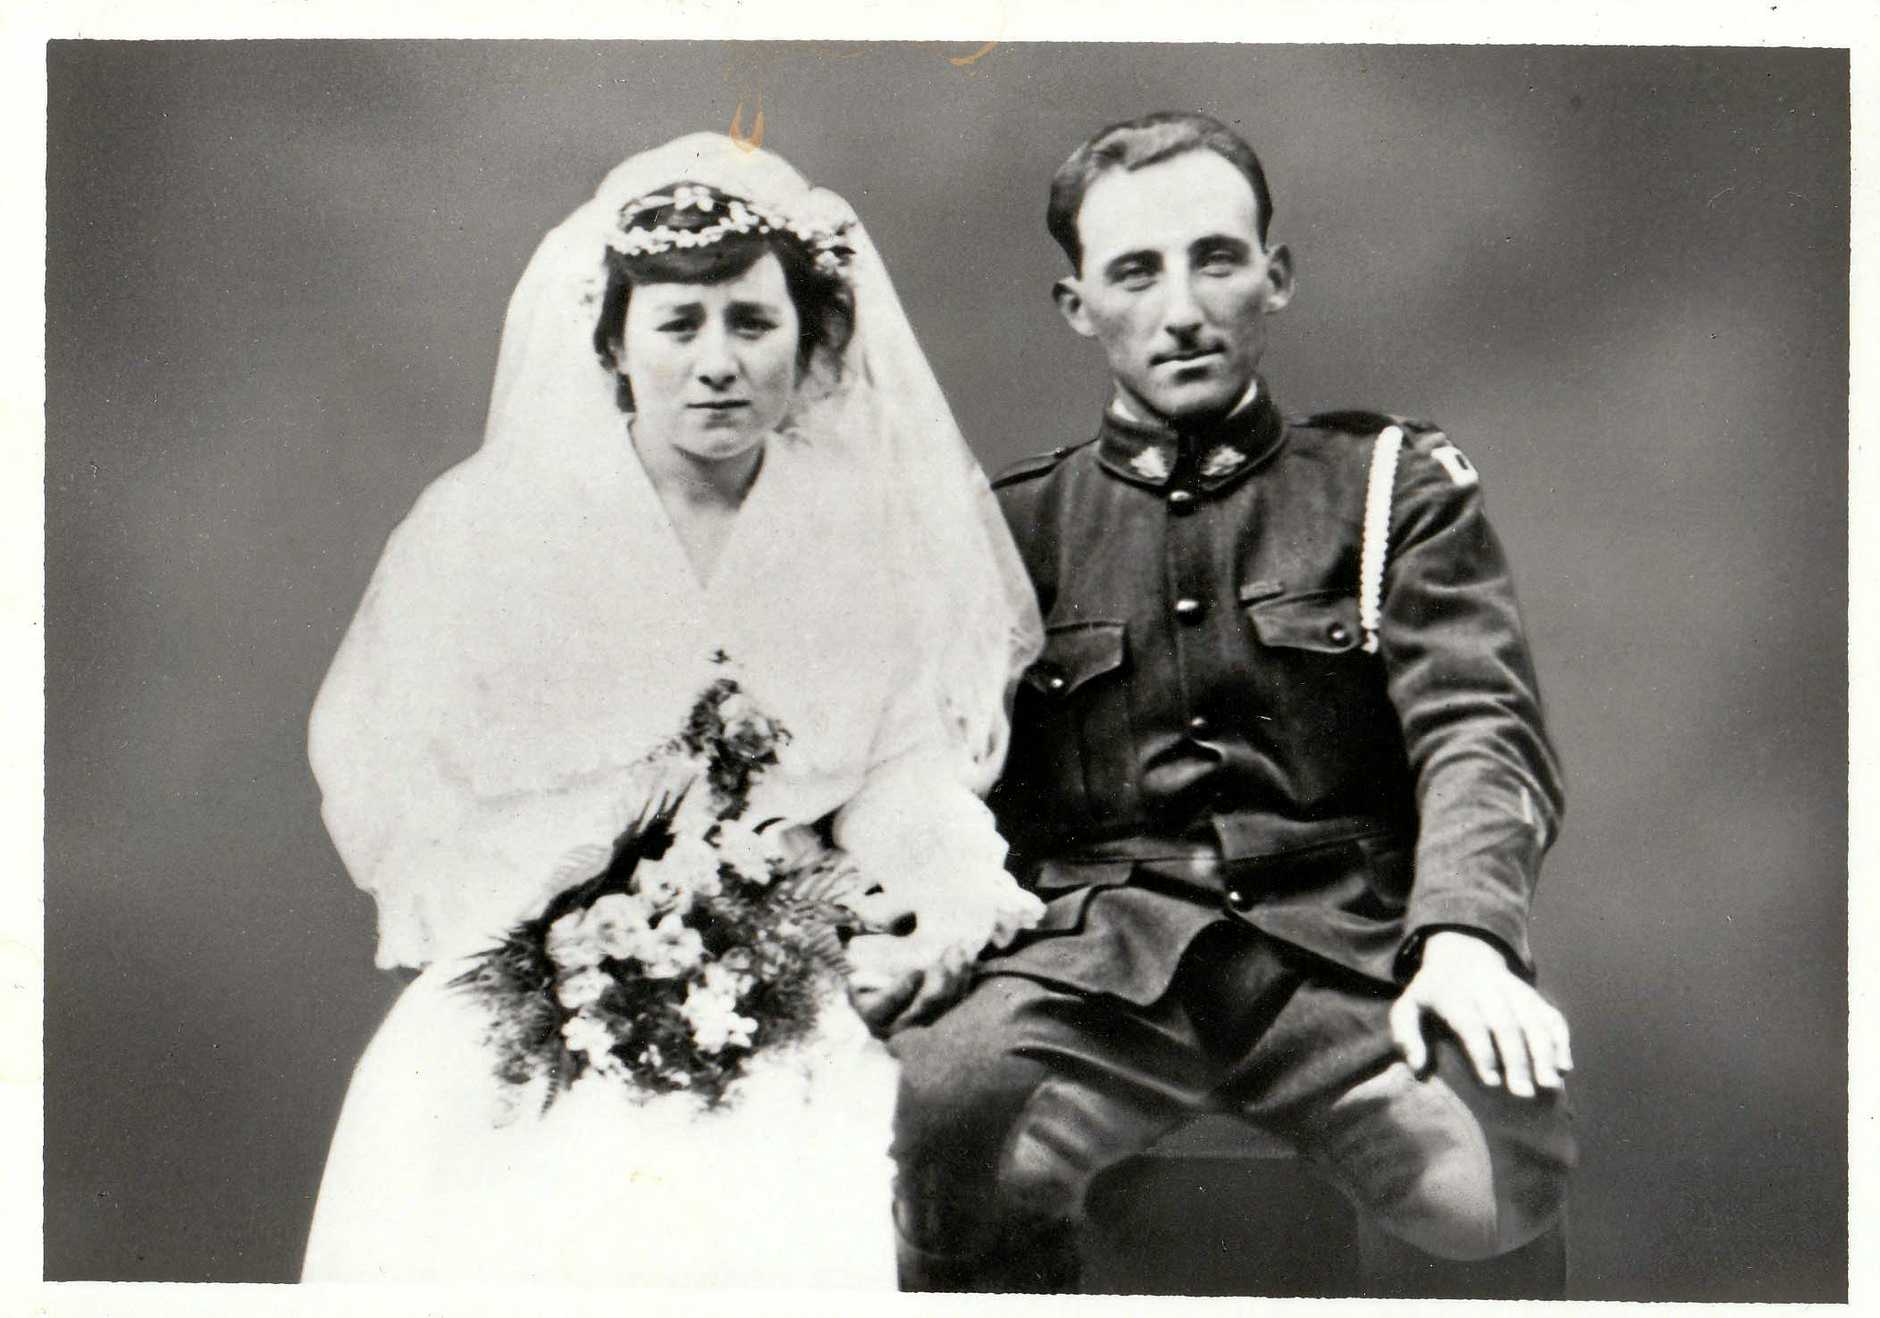 Joe & Nancy Reibel on their wedding day, July 13, 1919.